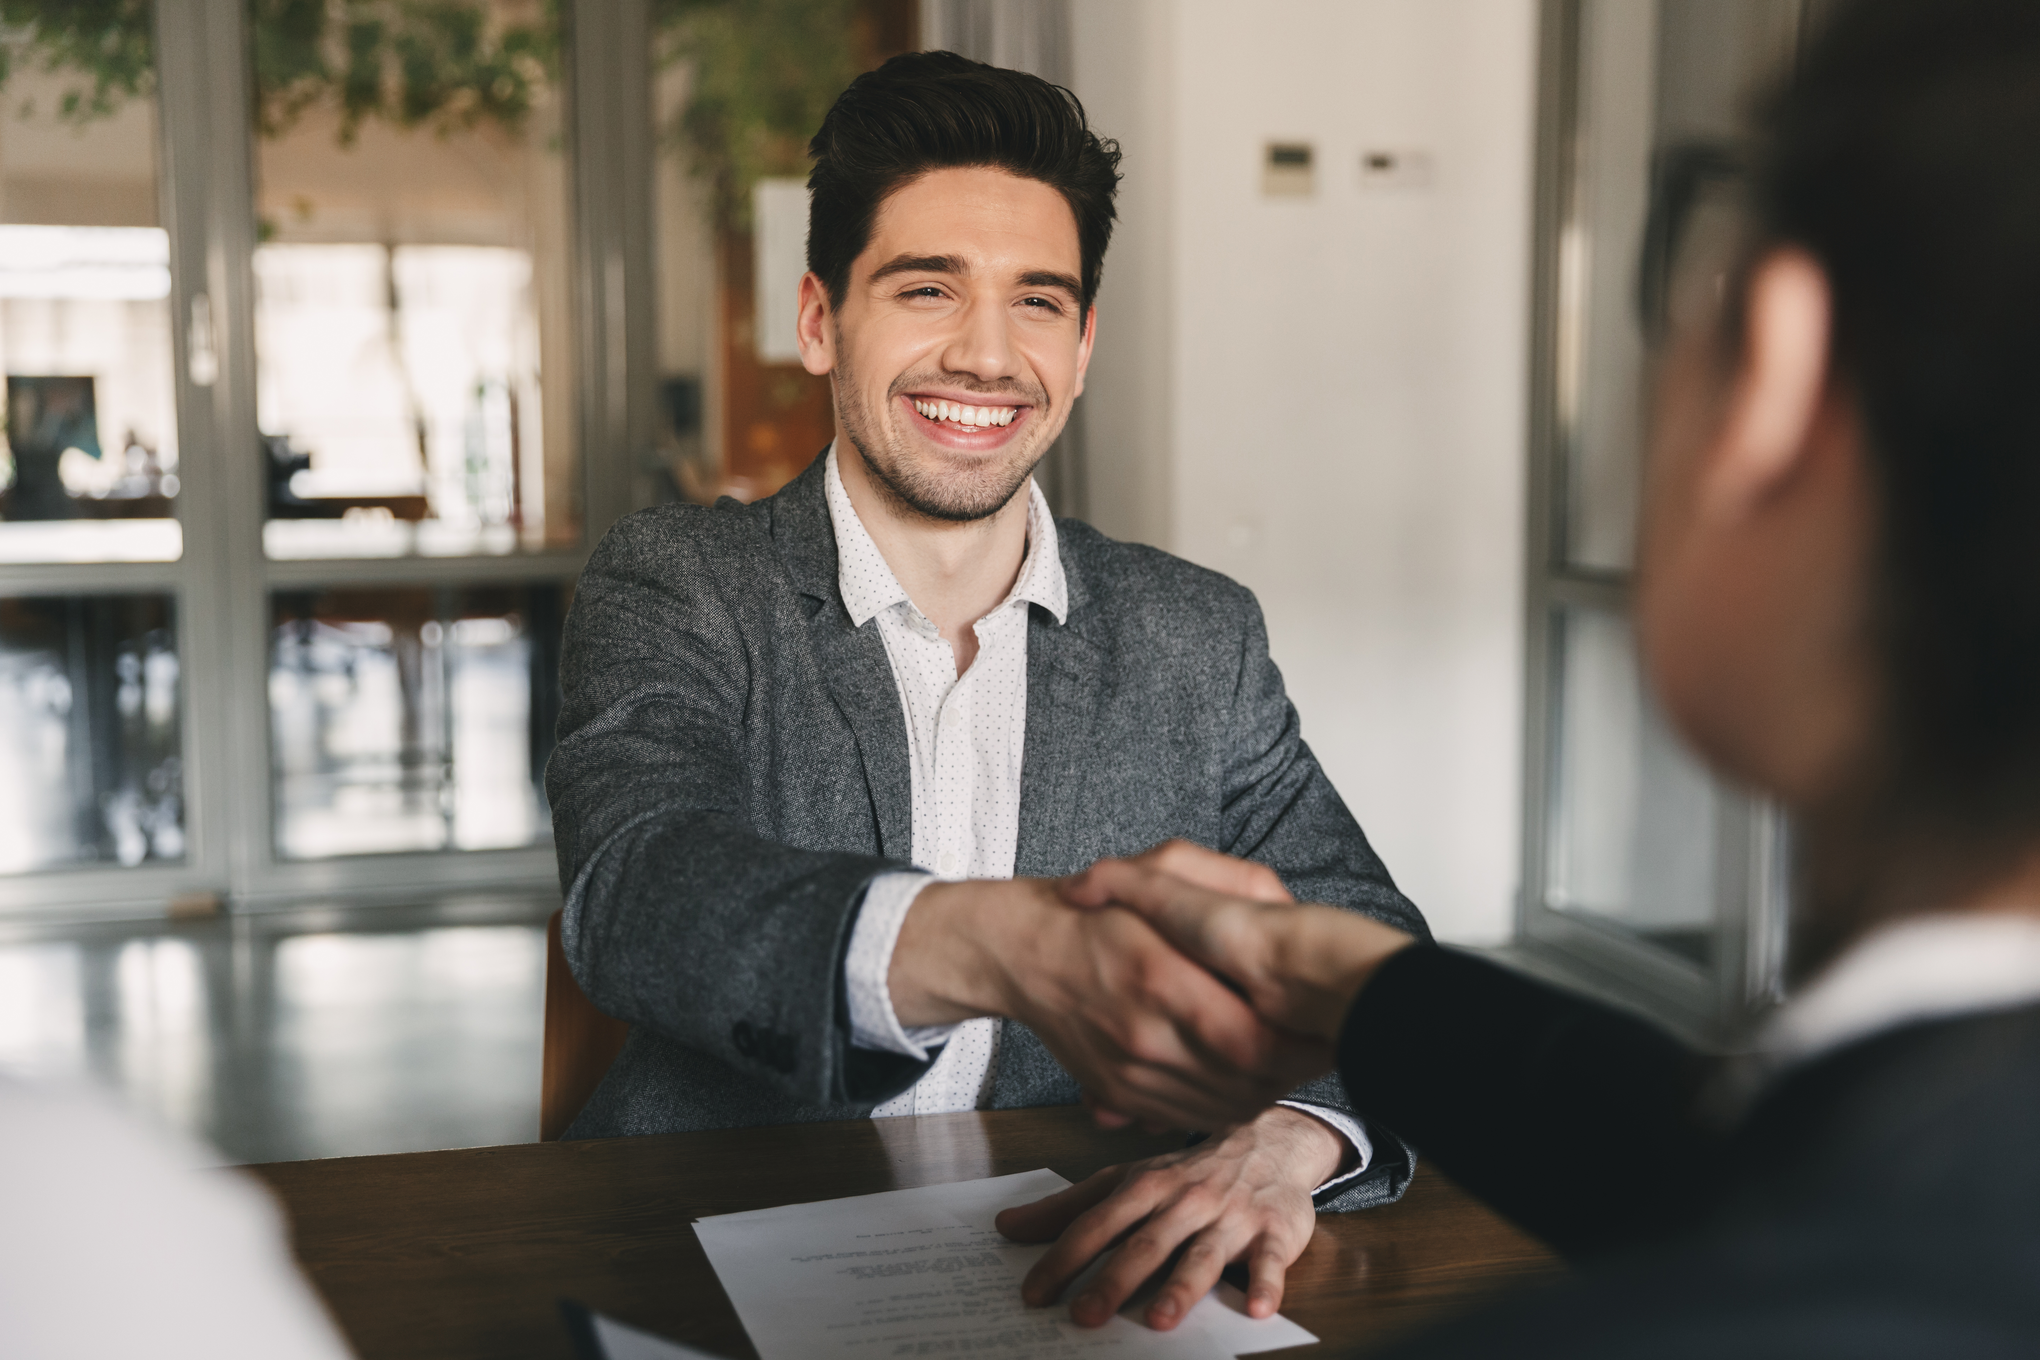 business-career-placement-concept-happy-caucasian-man-30s-rejoicing-shaking-hands-with-employee-when-was-recruited-during-interview-office   Botkeeper